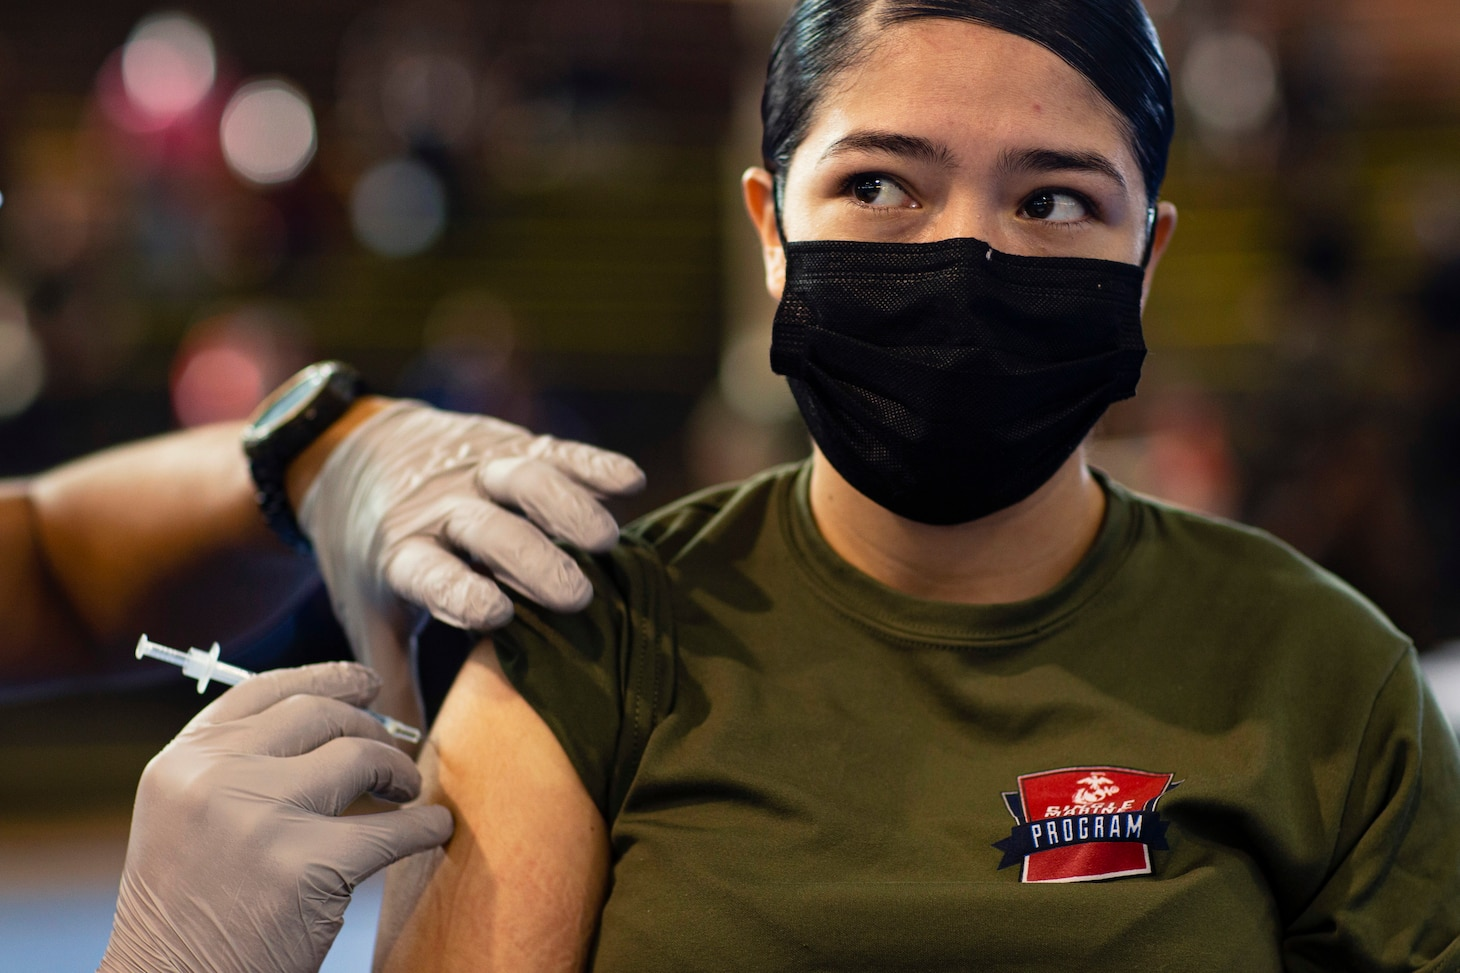 A Marine wearing a face mask receives a COVID-19 vaccine